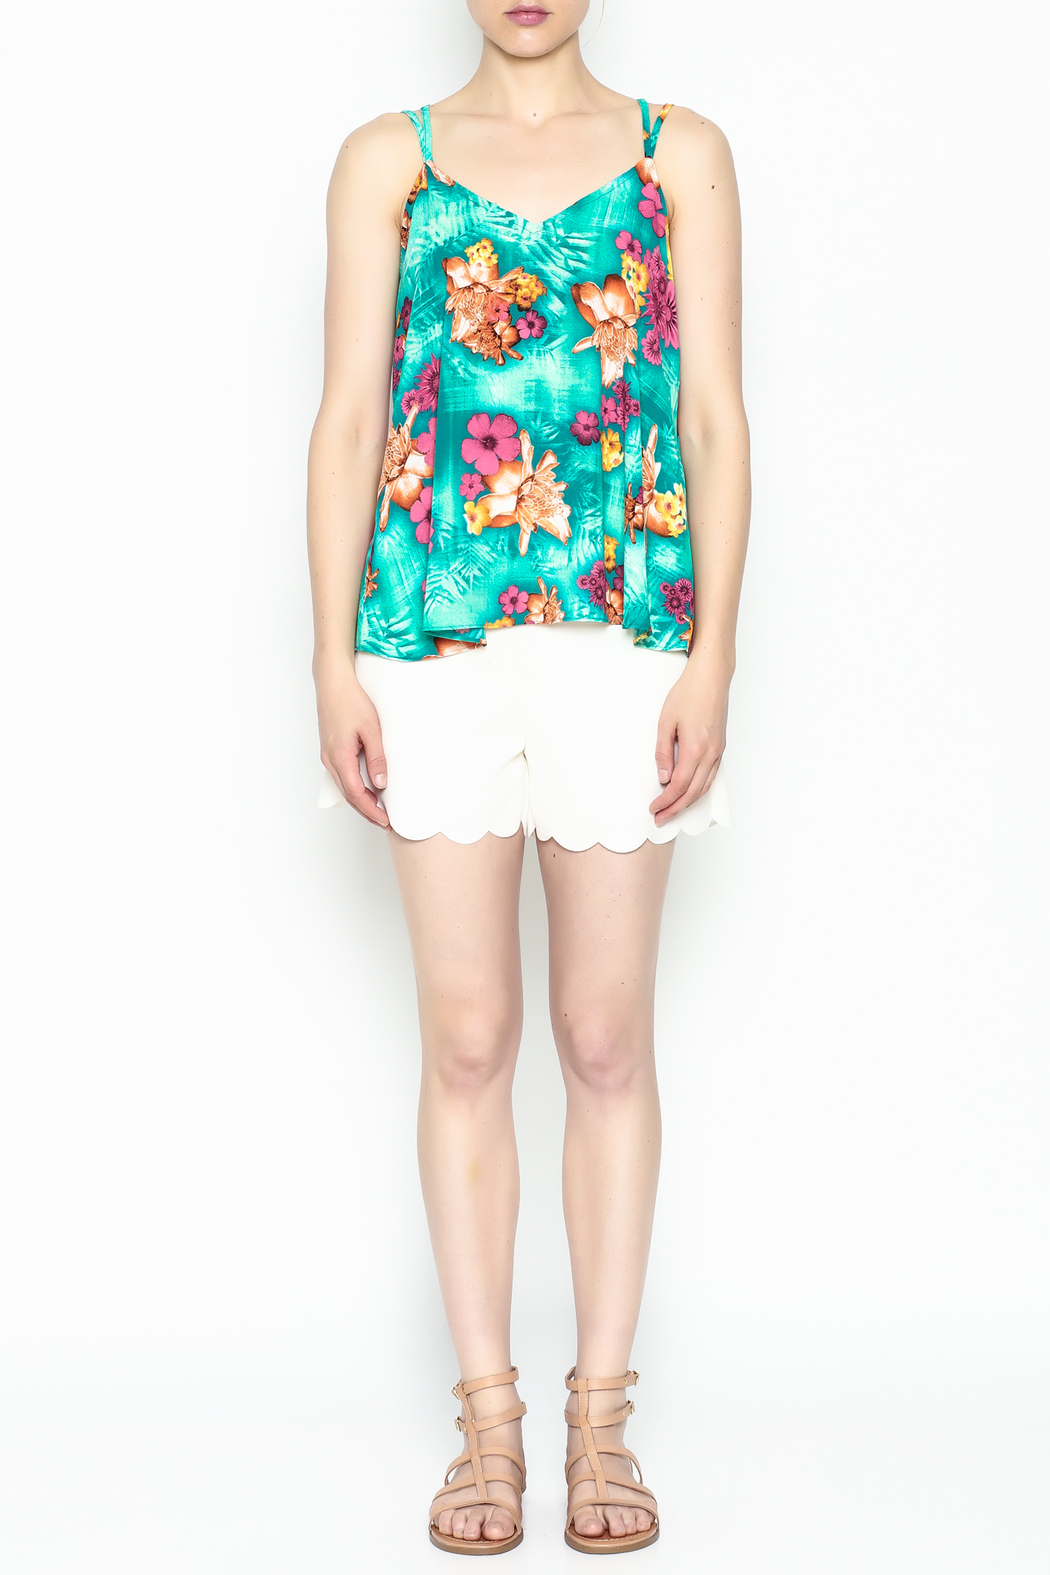 Buddy Love Tropical Kendall Top - Front Full Image